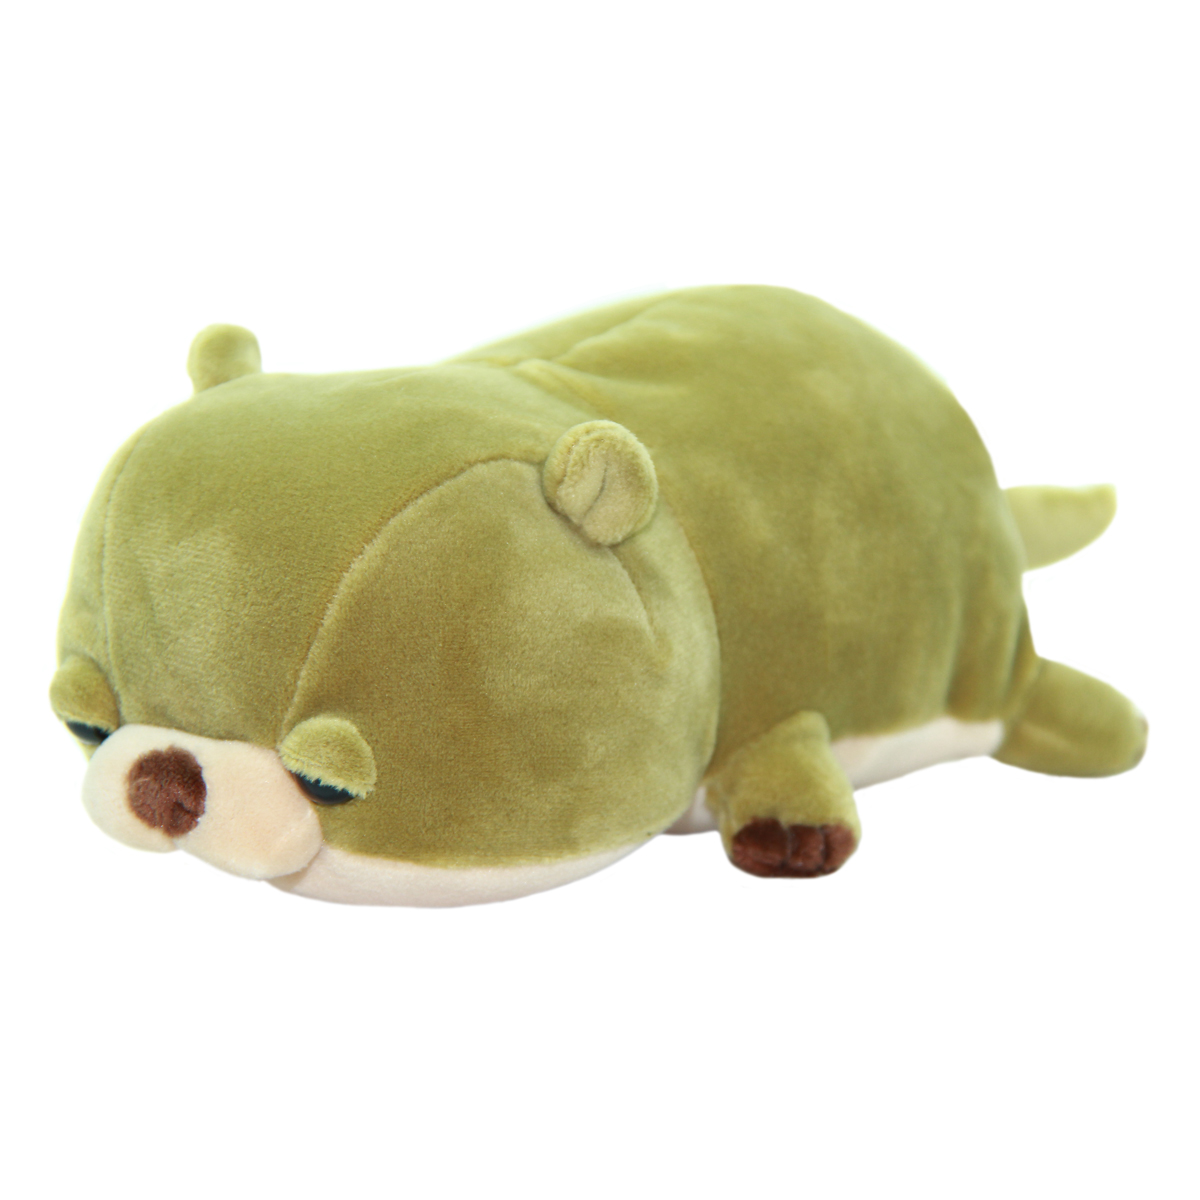 Mochi Puni Kawauso Collection Super Soft Otter Plush Toy Olive Green 8 Inches